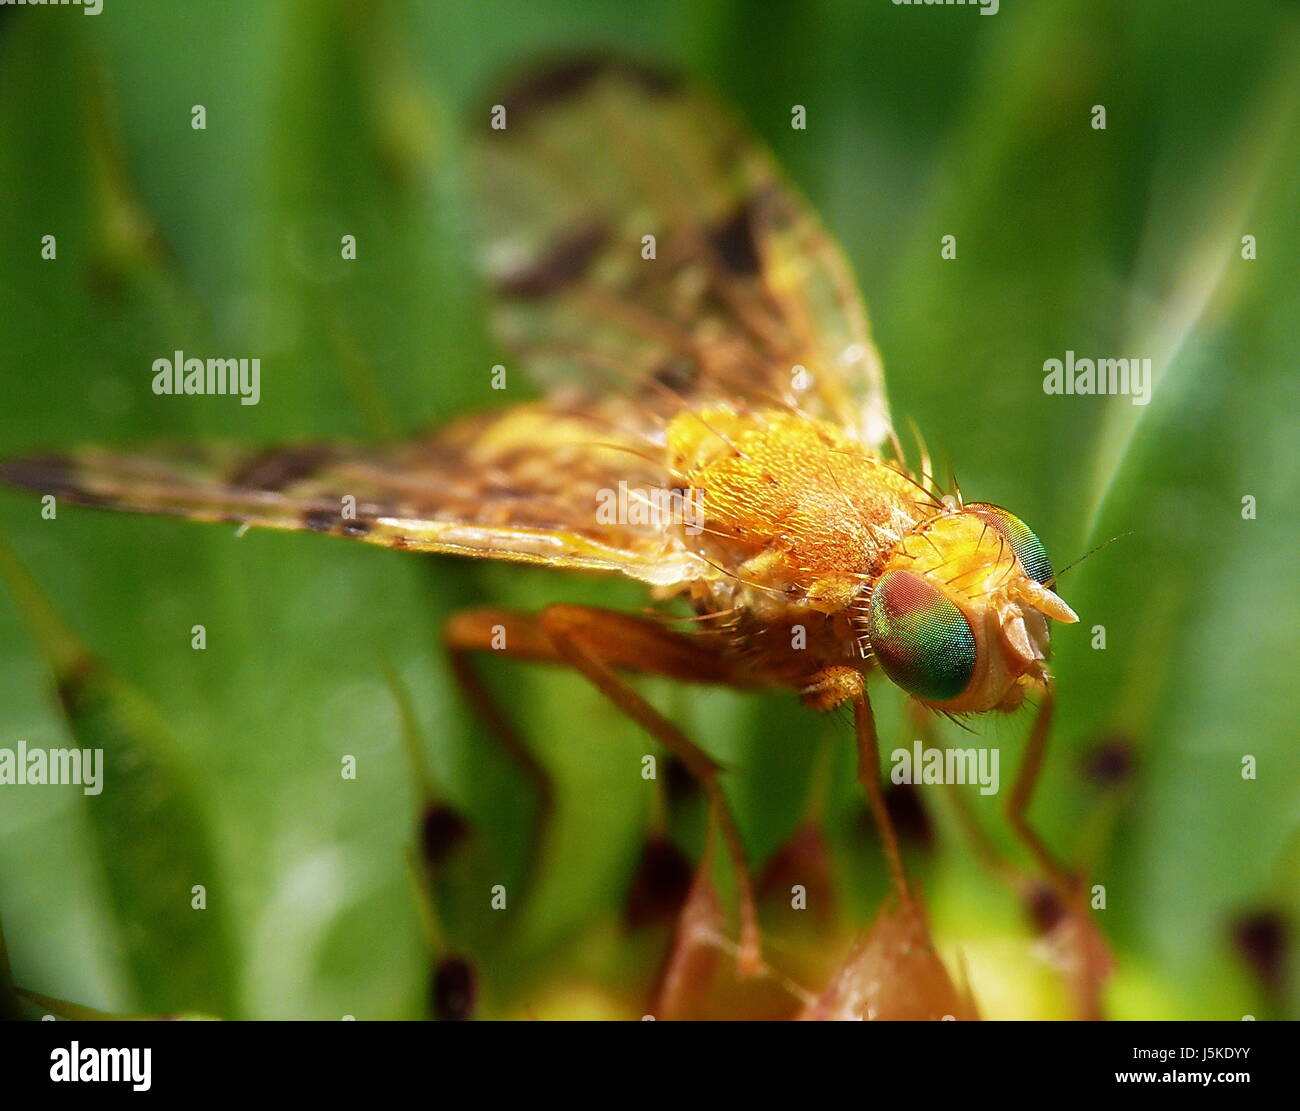 bohrfliege (gr. approximately 5mm) - Stock Image